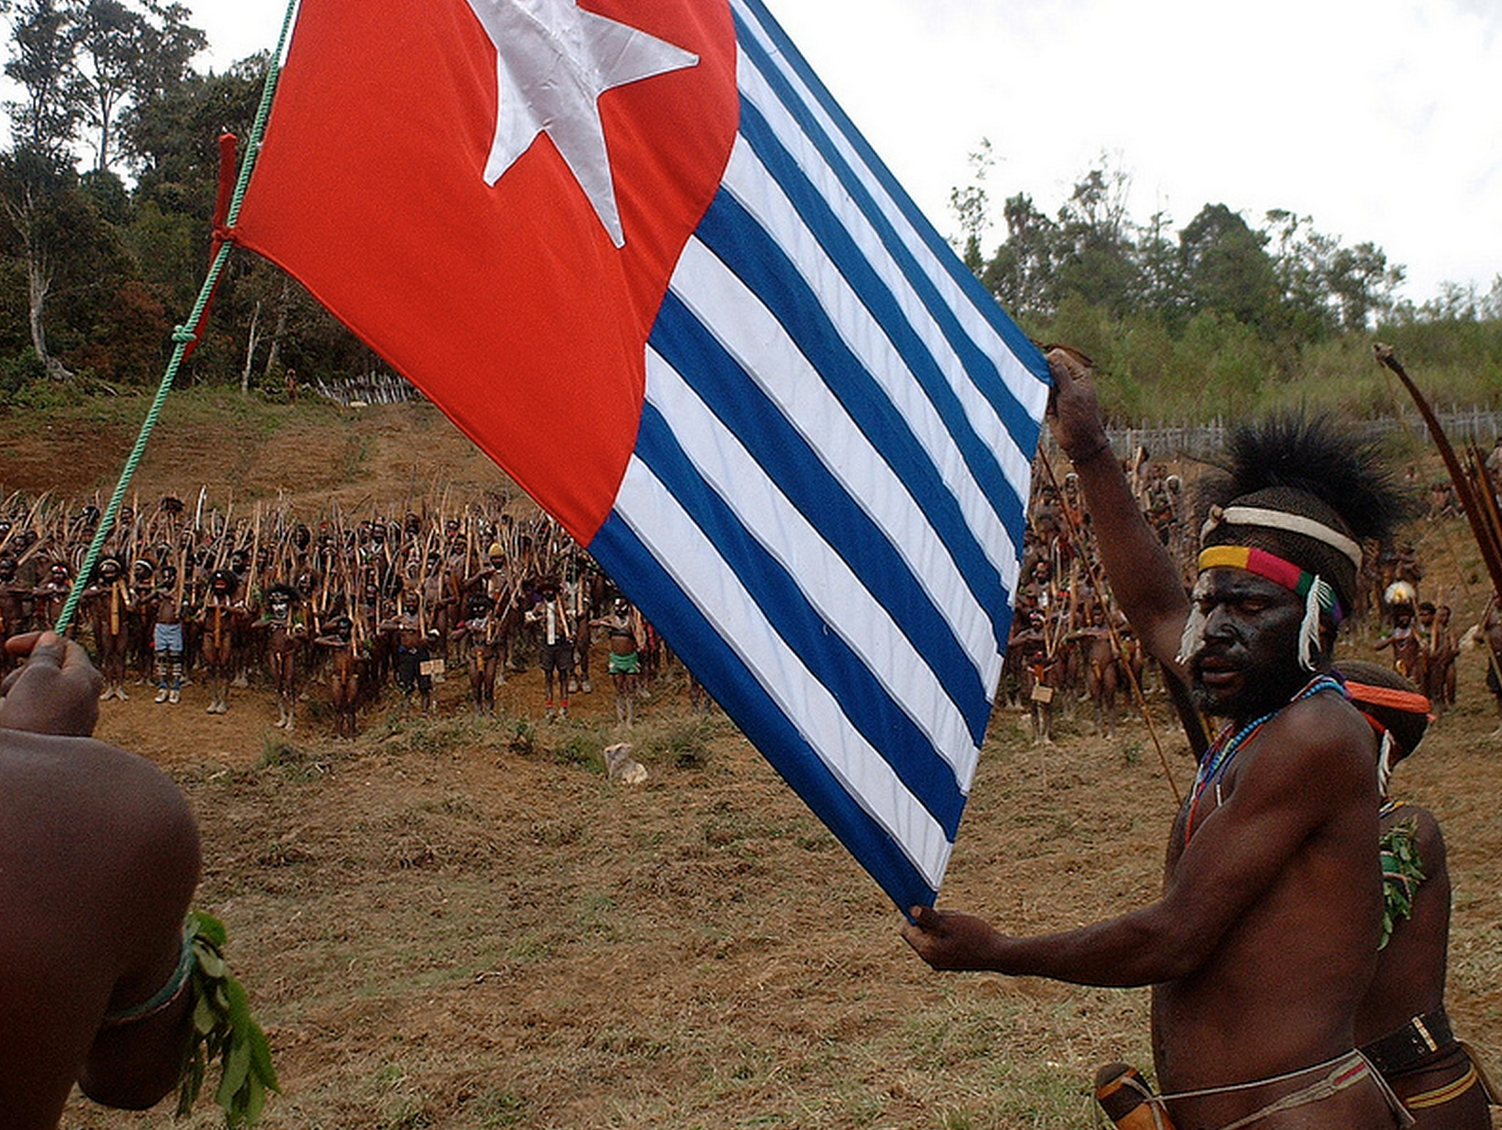 Lush shines a light on West Papua's independence struggle